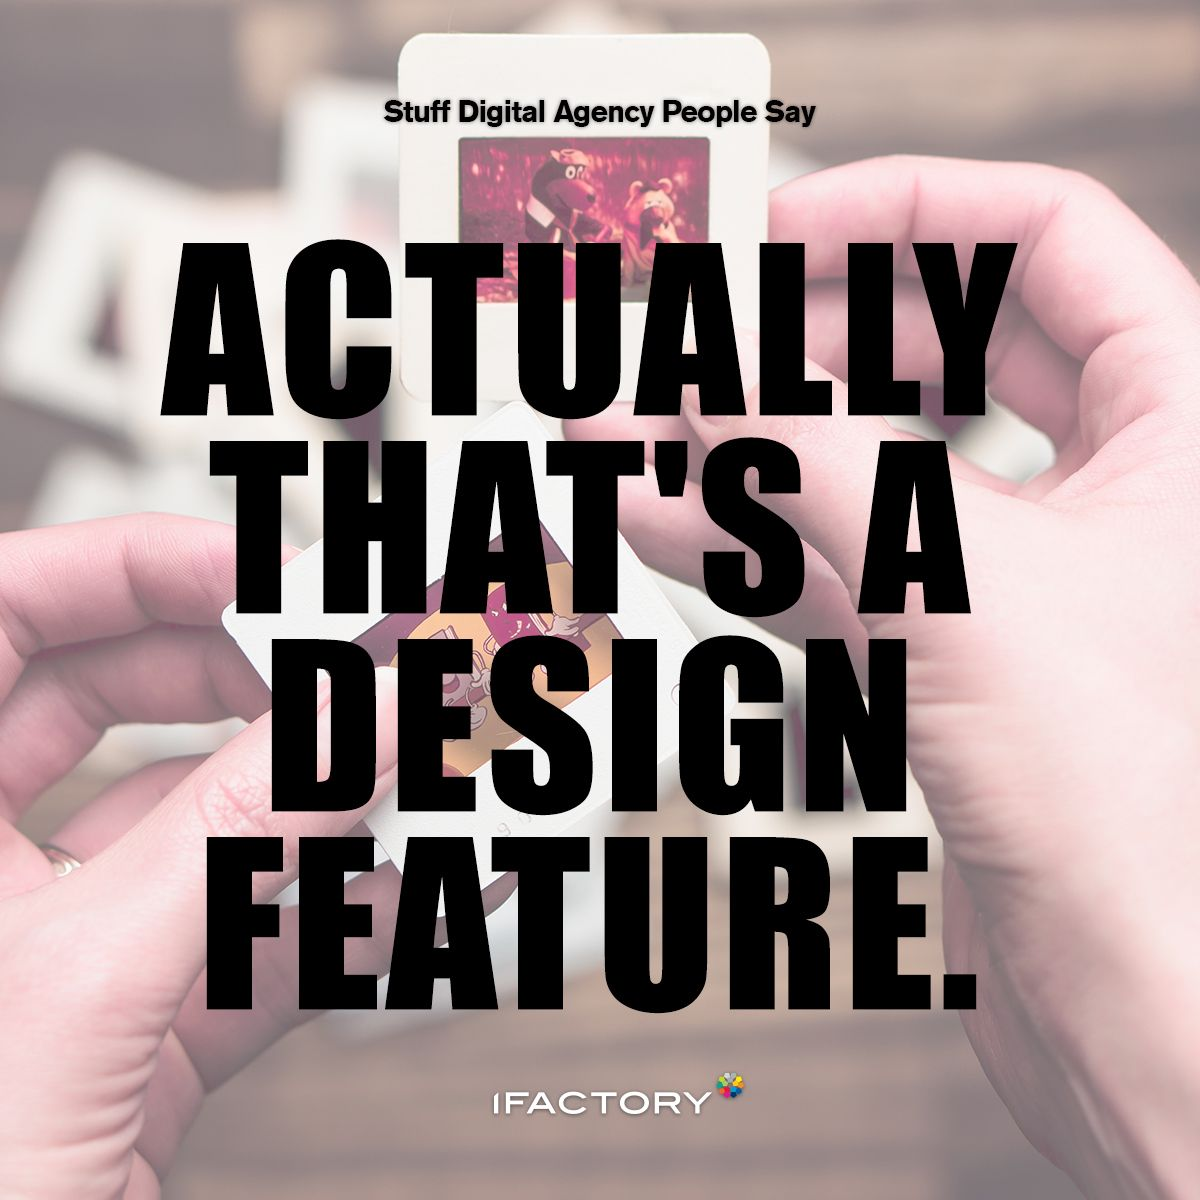 Actually that's a design feature  #stuffdigitalagencypeoplesay